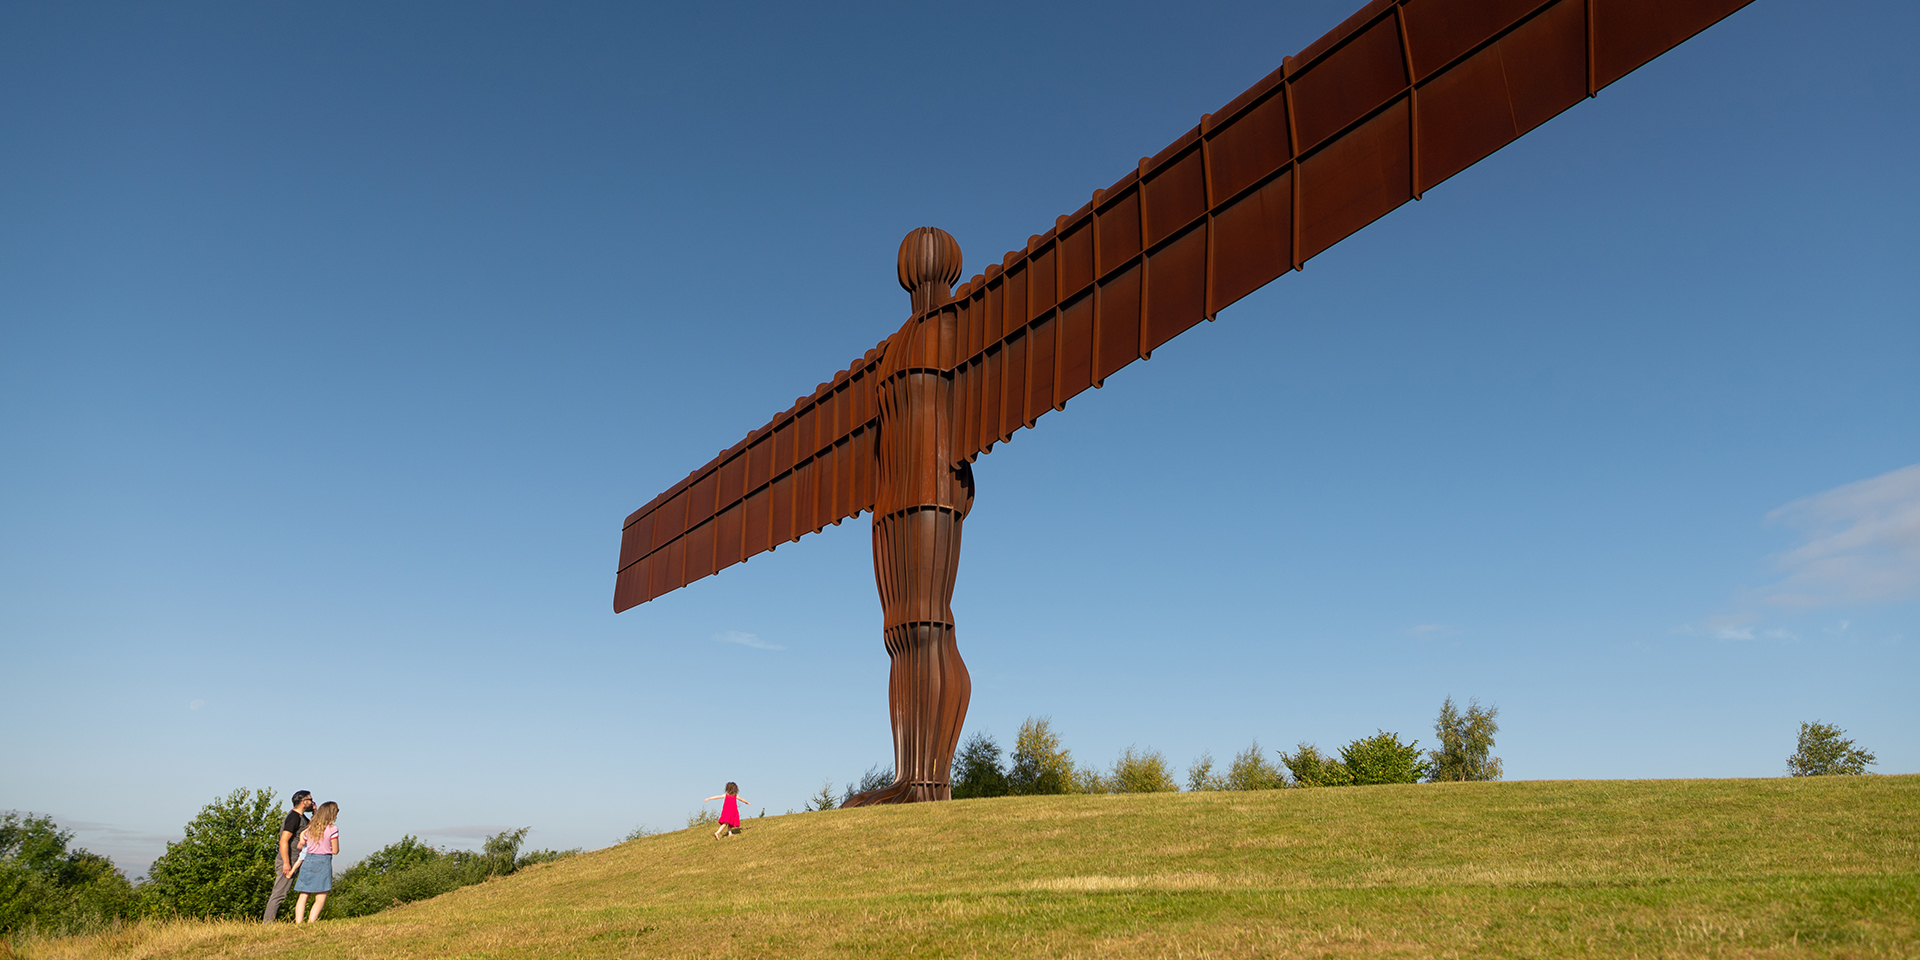 Angel of the North summer